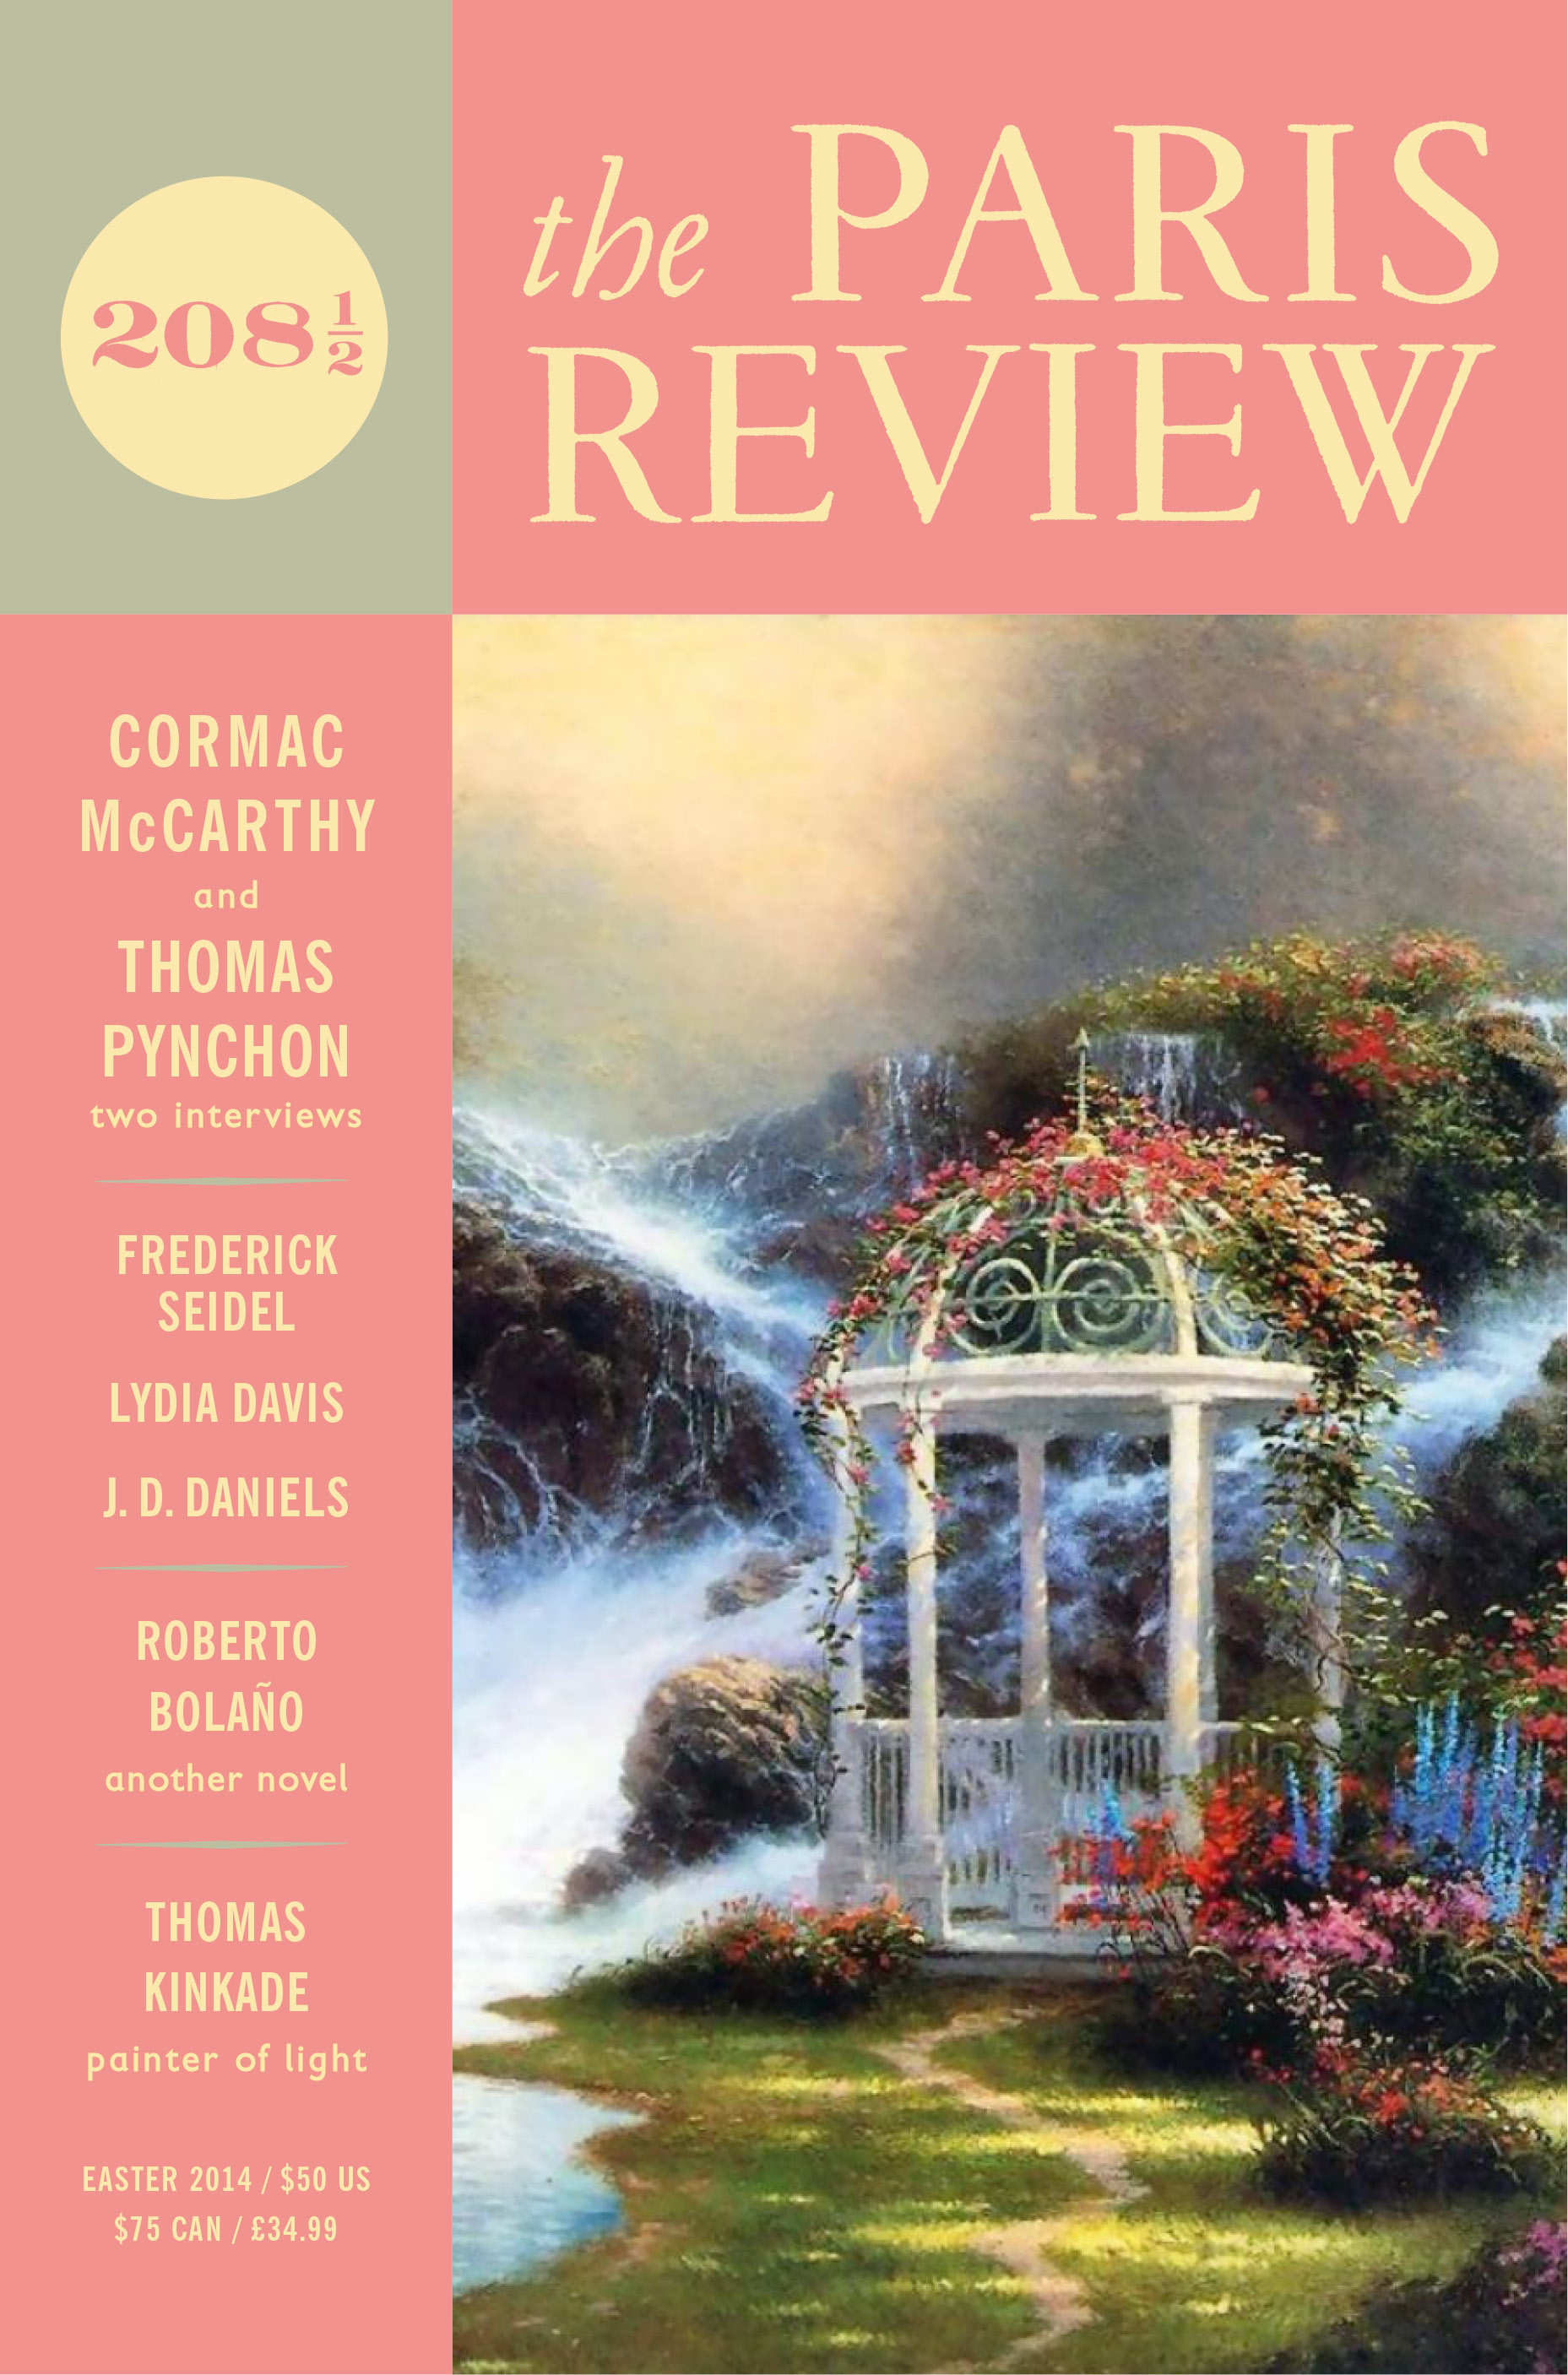 At Last! Spring Is Here, Easter Ising, And, As You Can See, The Latest  Issue Of The Paris Review Has Already Taken Its Pastels Out Of The  Closet—it's